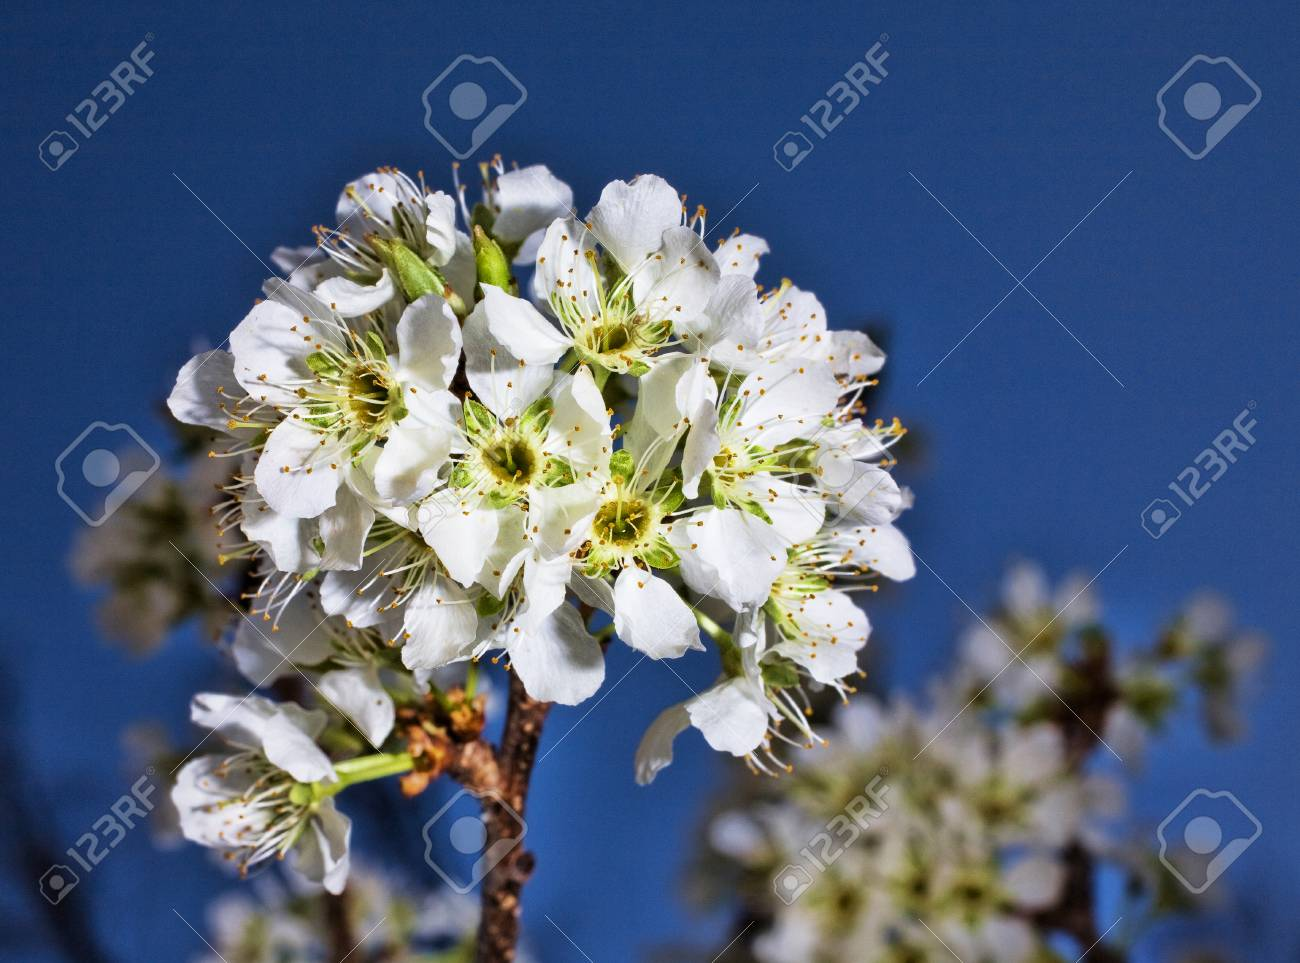 White plum flowers blossoming on the end of a branch stock photo stock photo white plum flowers blossoming on the end of a branch mightylinksfo